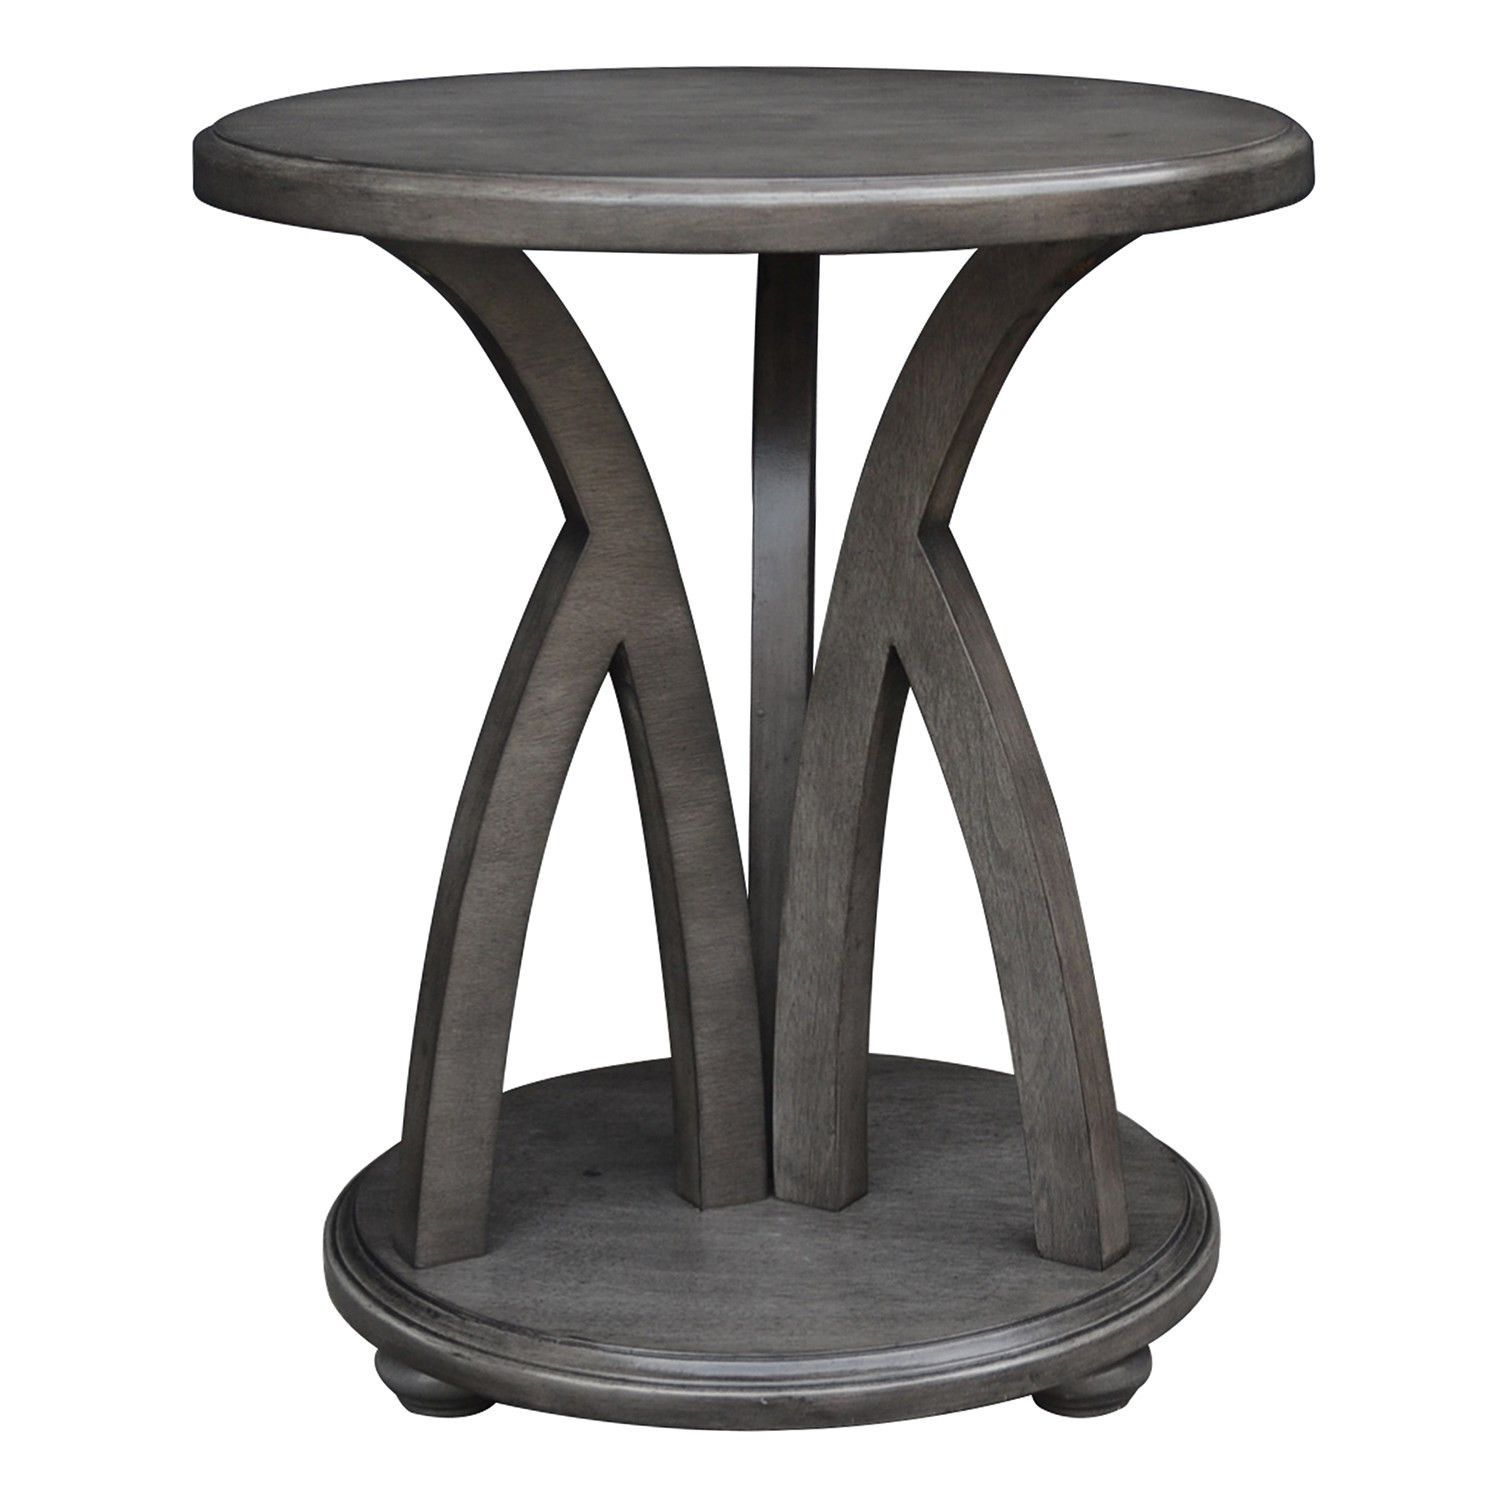 crestview brayden grey accent tables products gray round table bedroom mirrors coffee ideas small side lamps target wicker chairs living room decorating uttermost laton mirrored